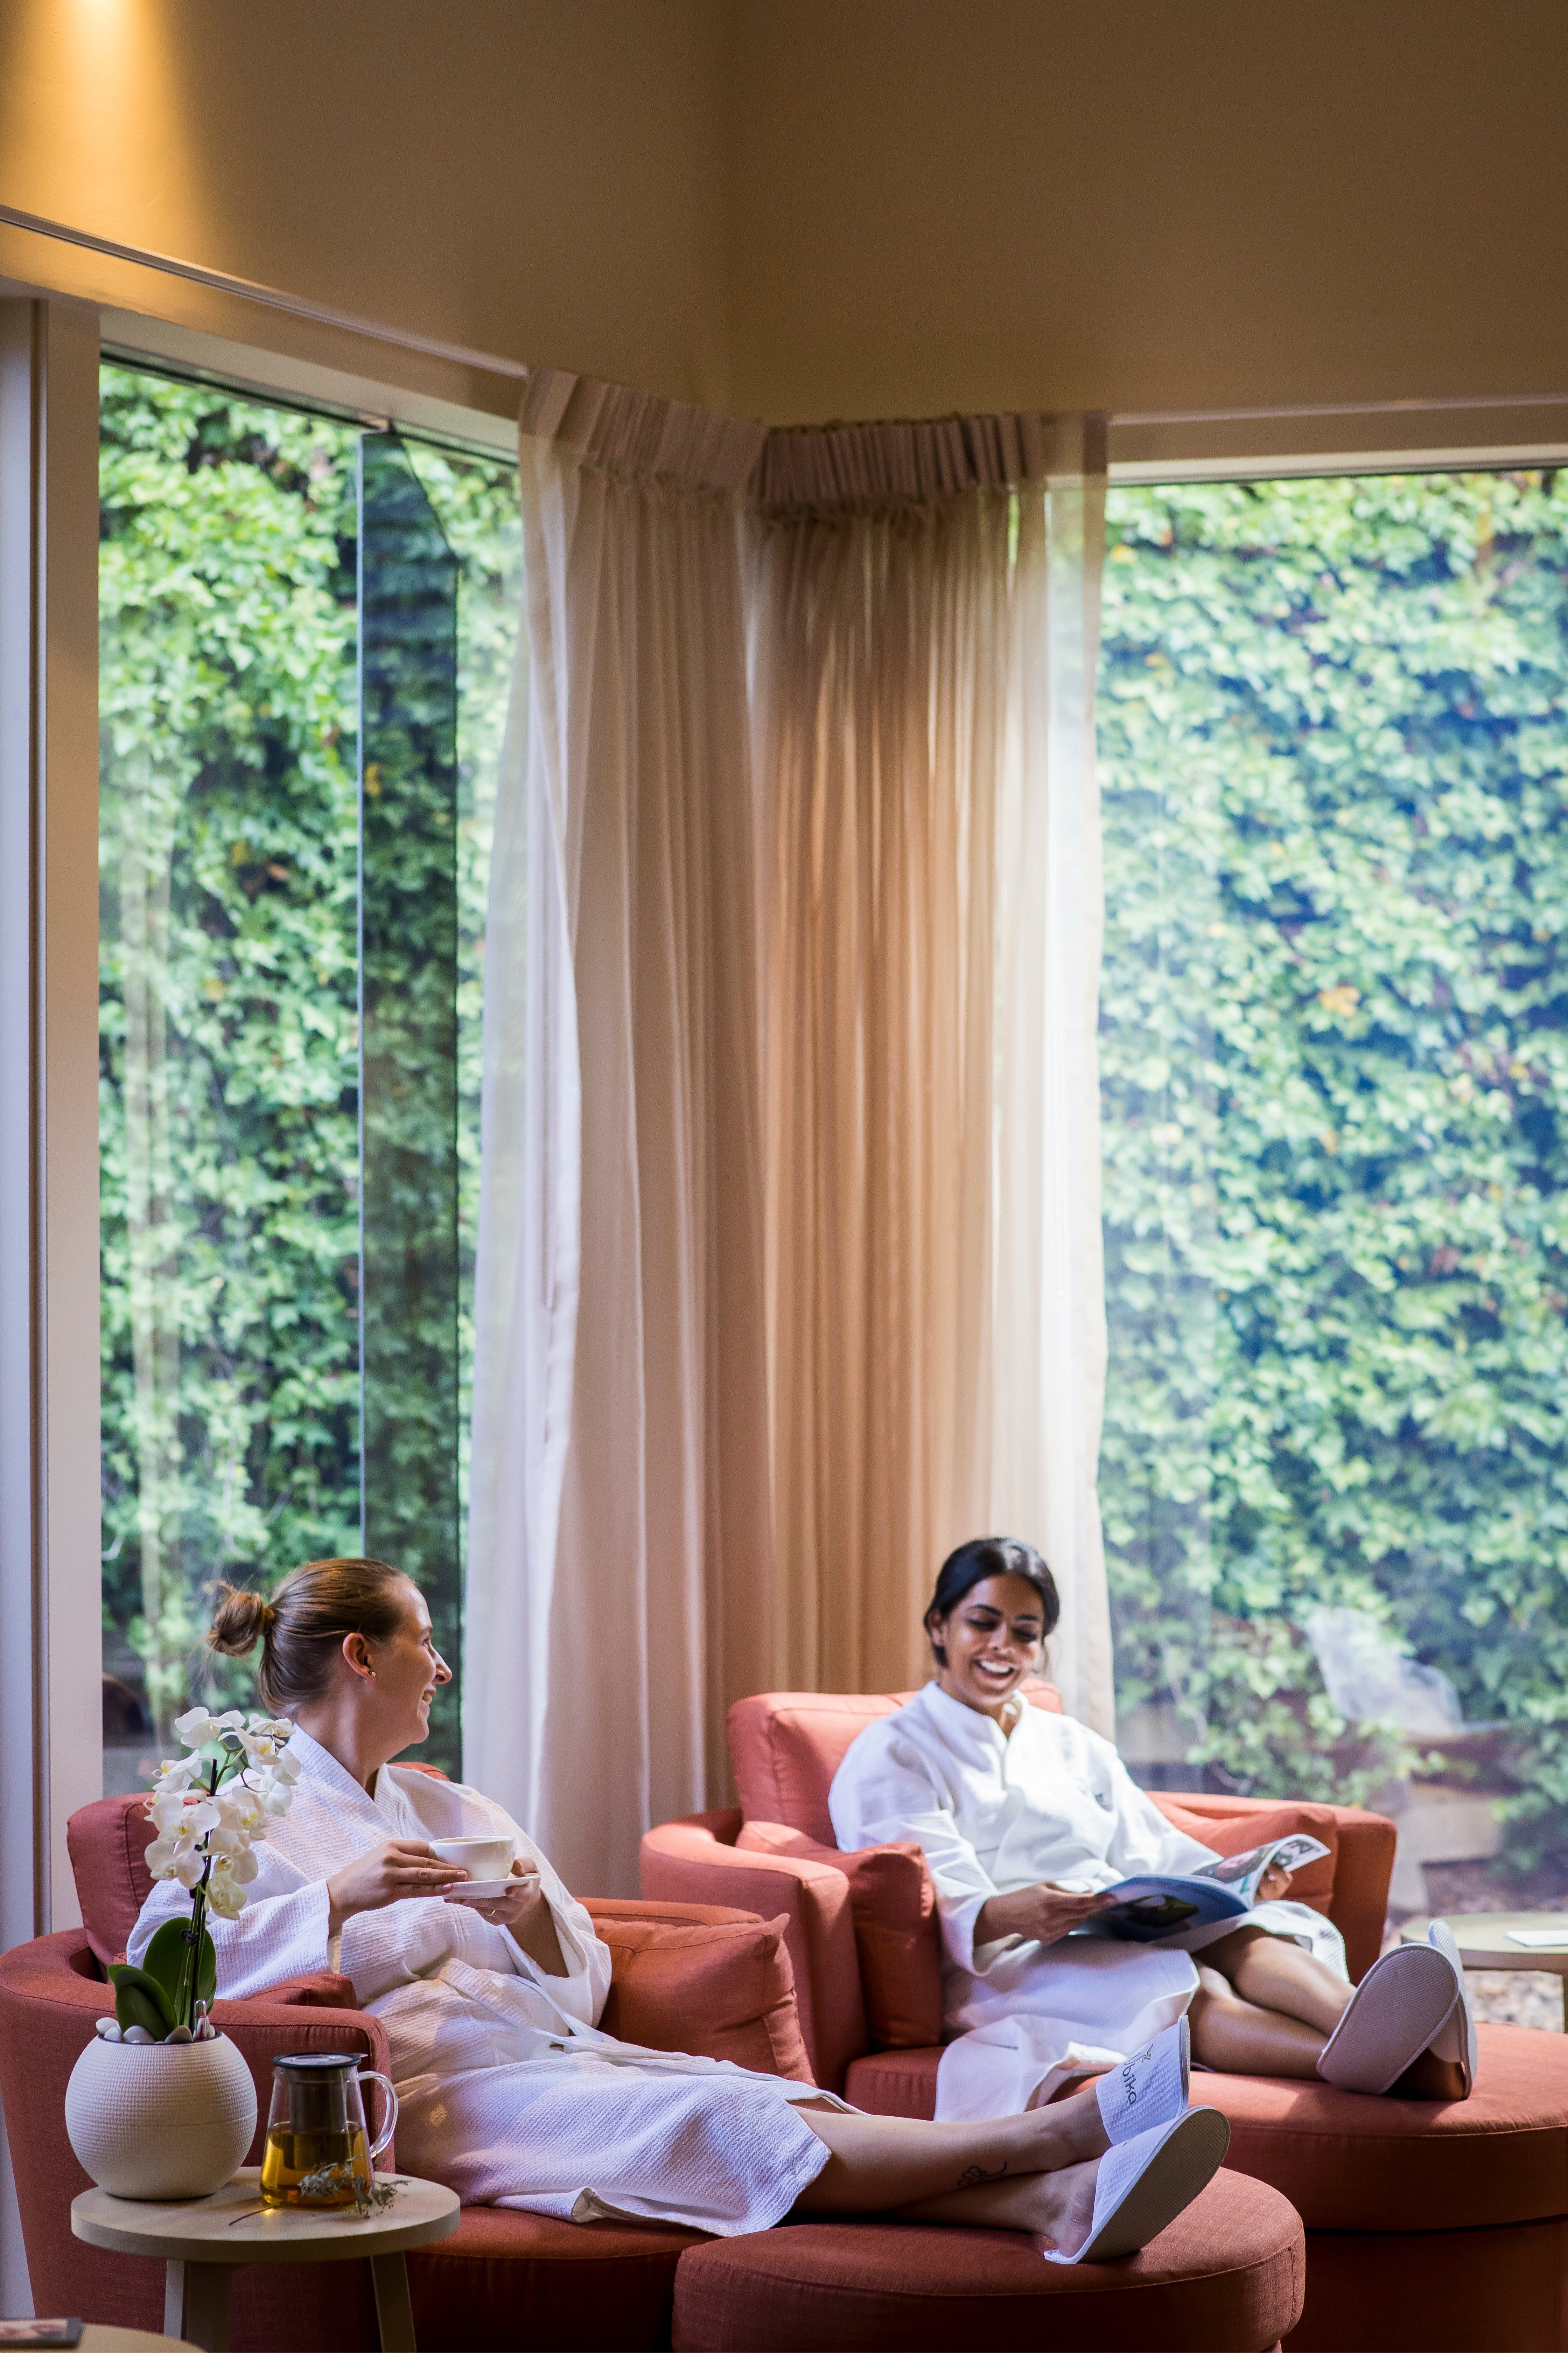 Ubika Day Spa Leura - Accommodation Adelaide